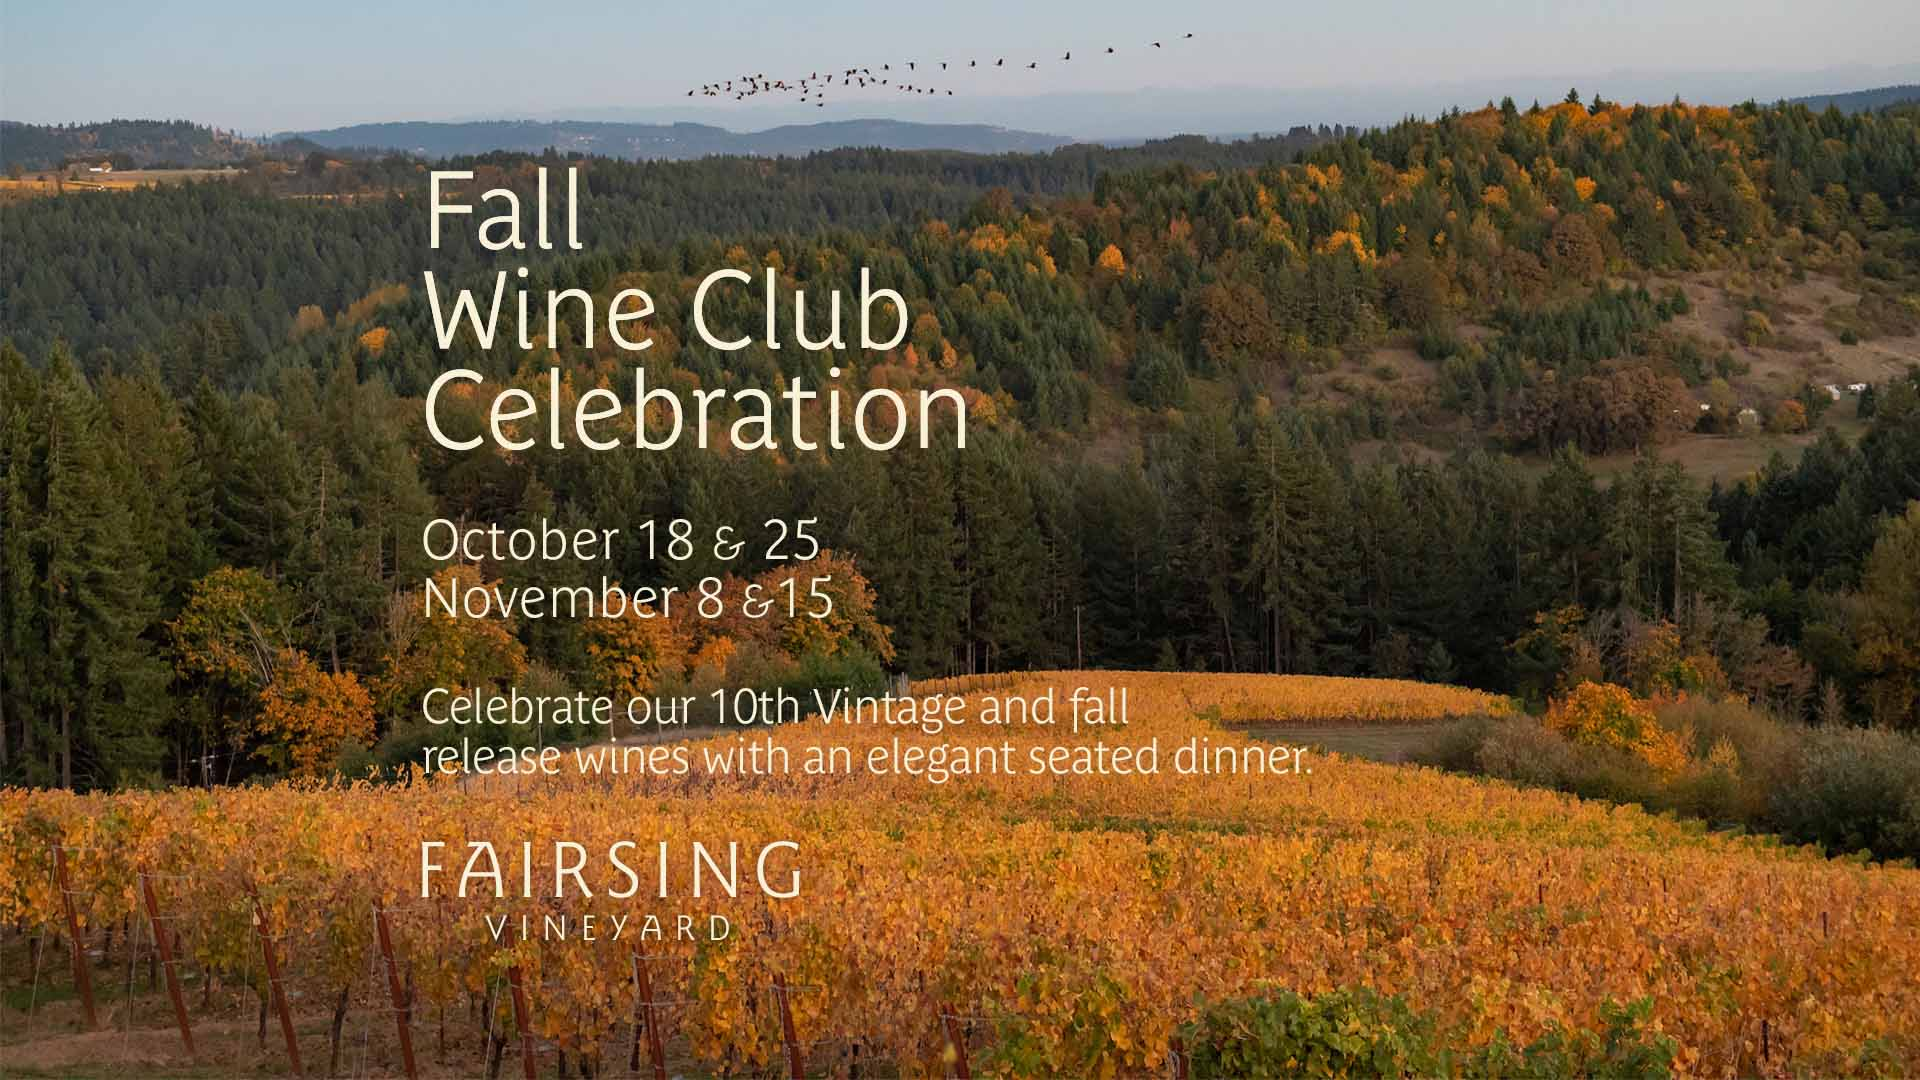 Fall Wine Club Celebration @ Fairsing Vineyard